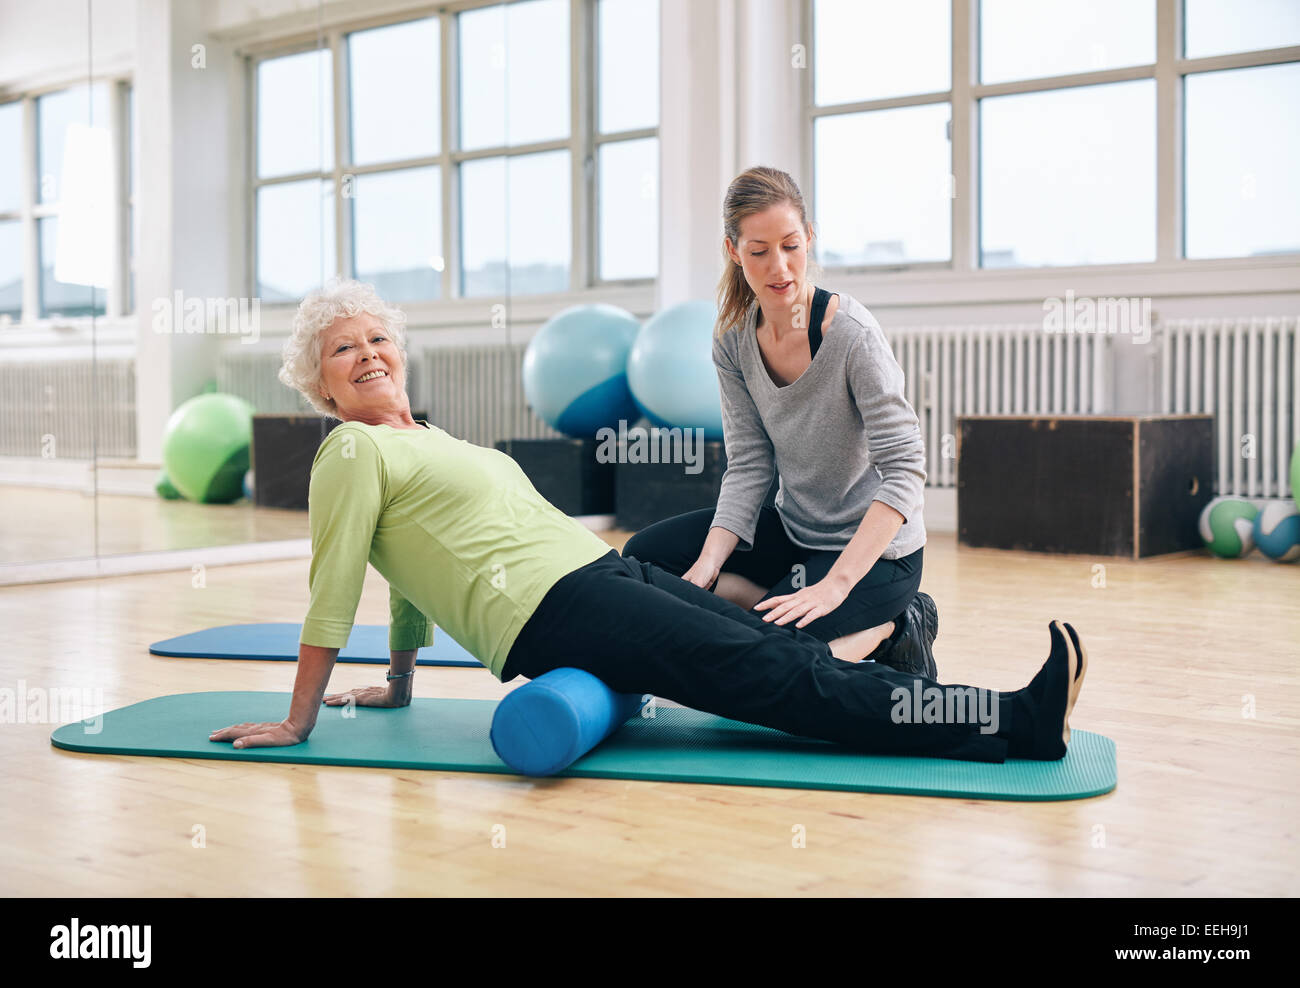 Senior woman doing pilates on the floor with foam roller. Elder woman exercising being assisted by personal trainer - Stock Image